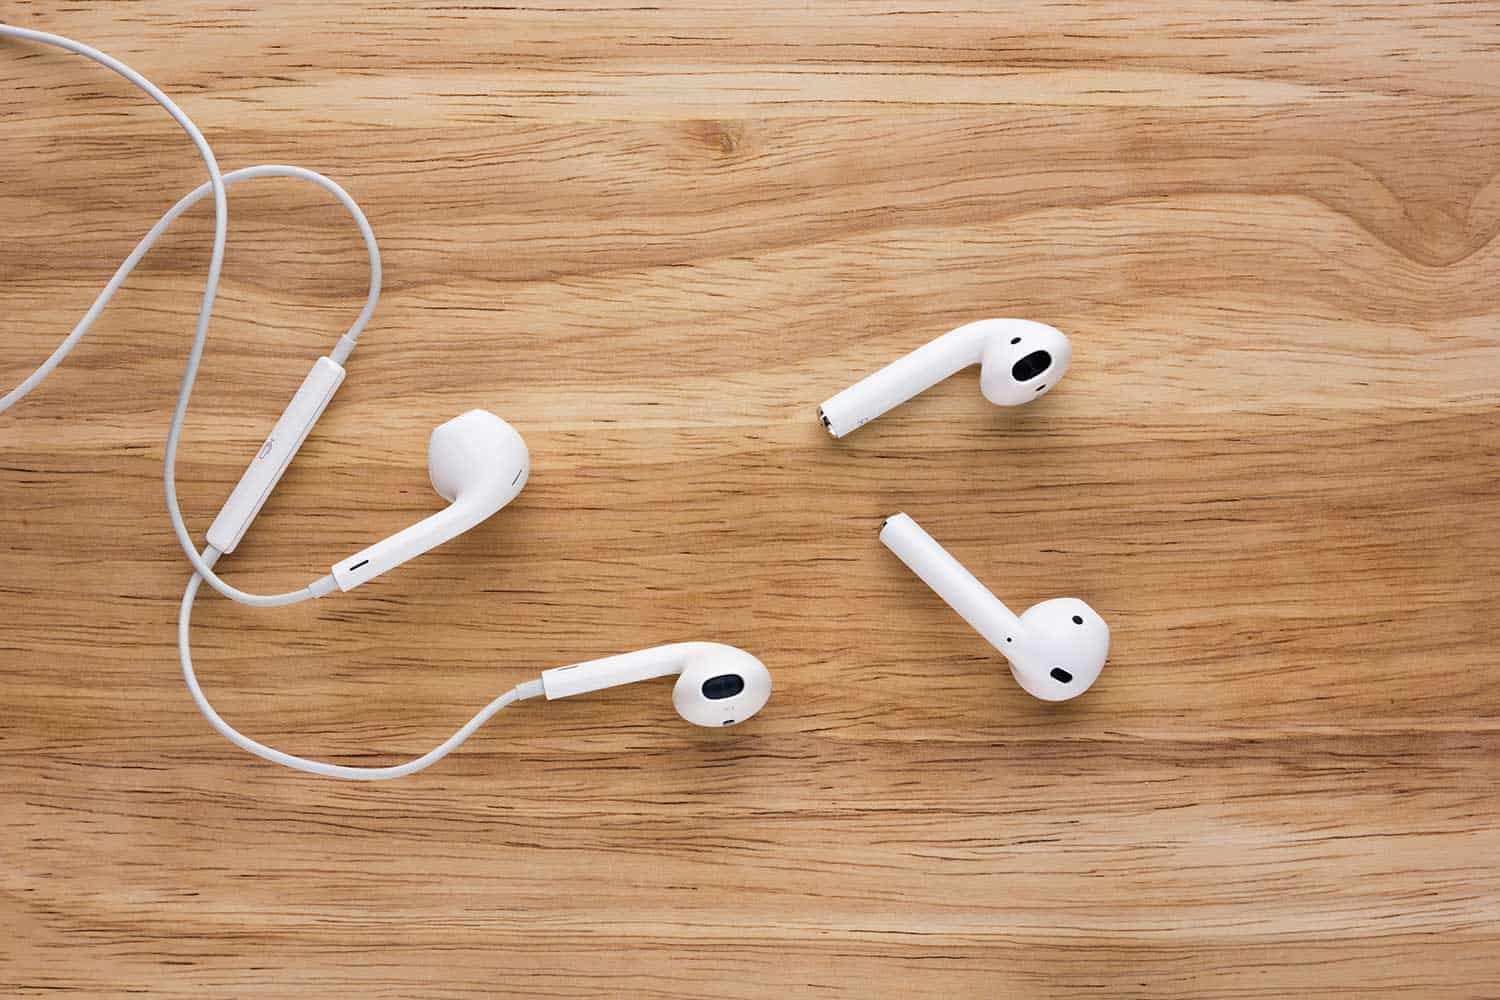 Airpods and Earpods are lying on a wooden surface